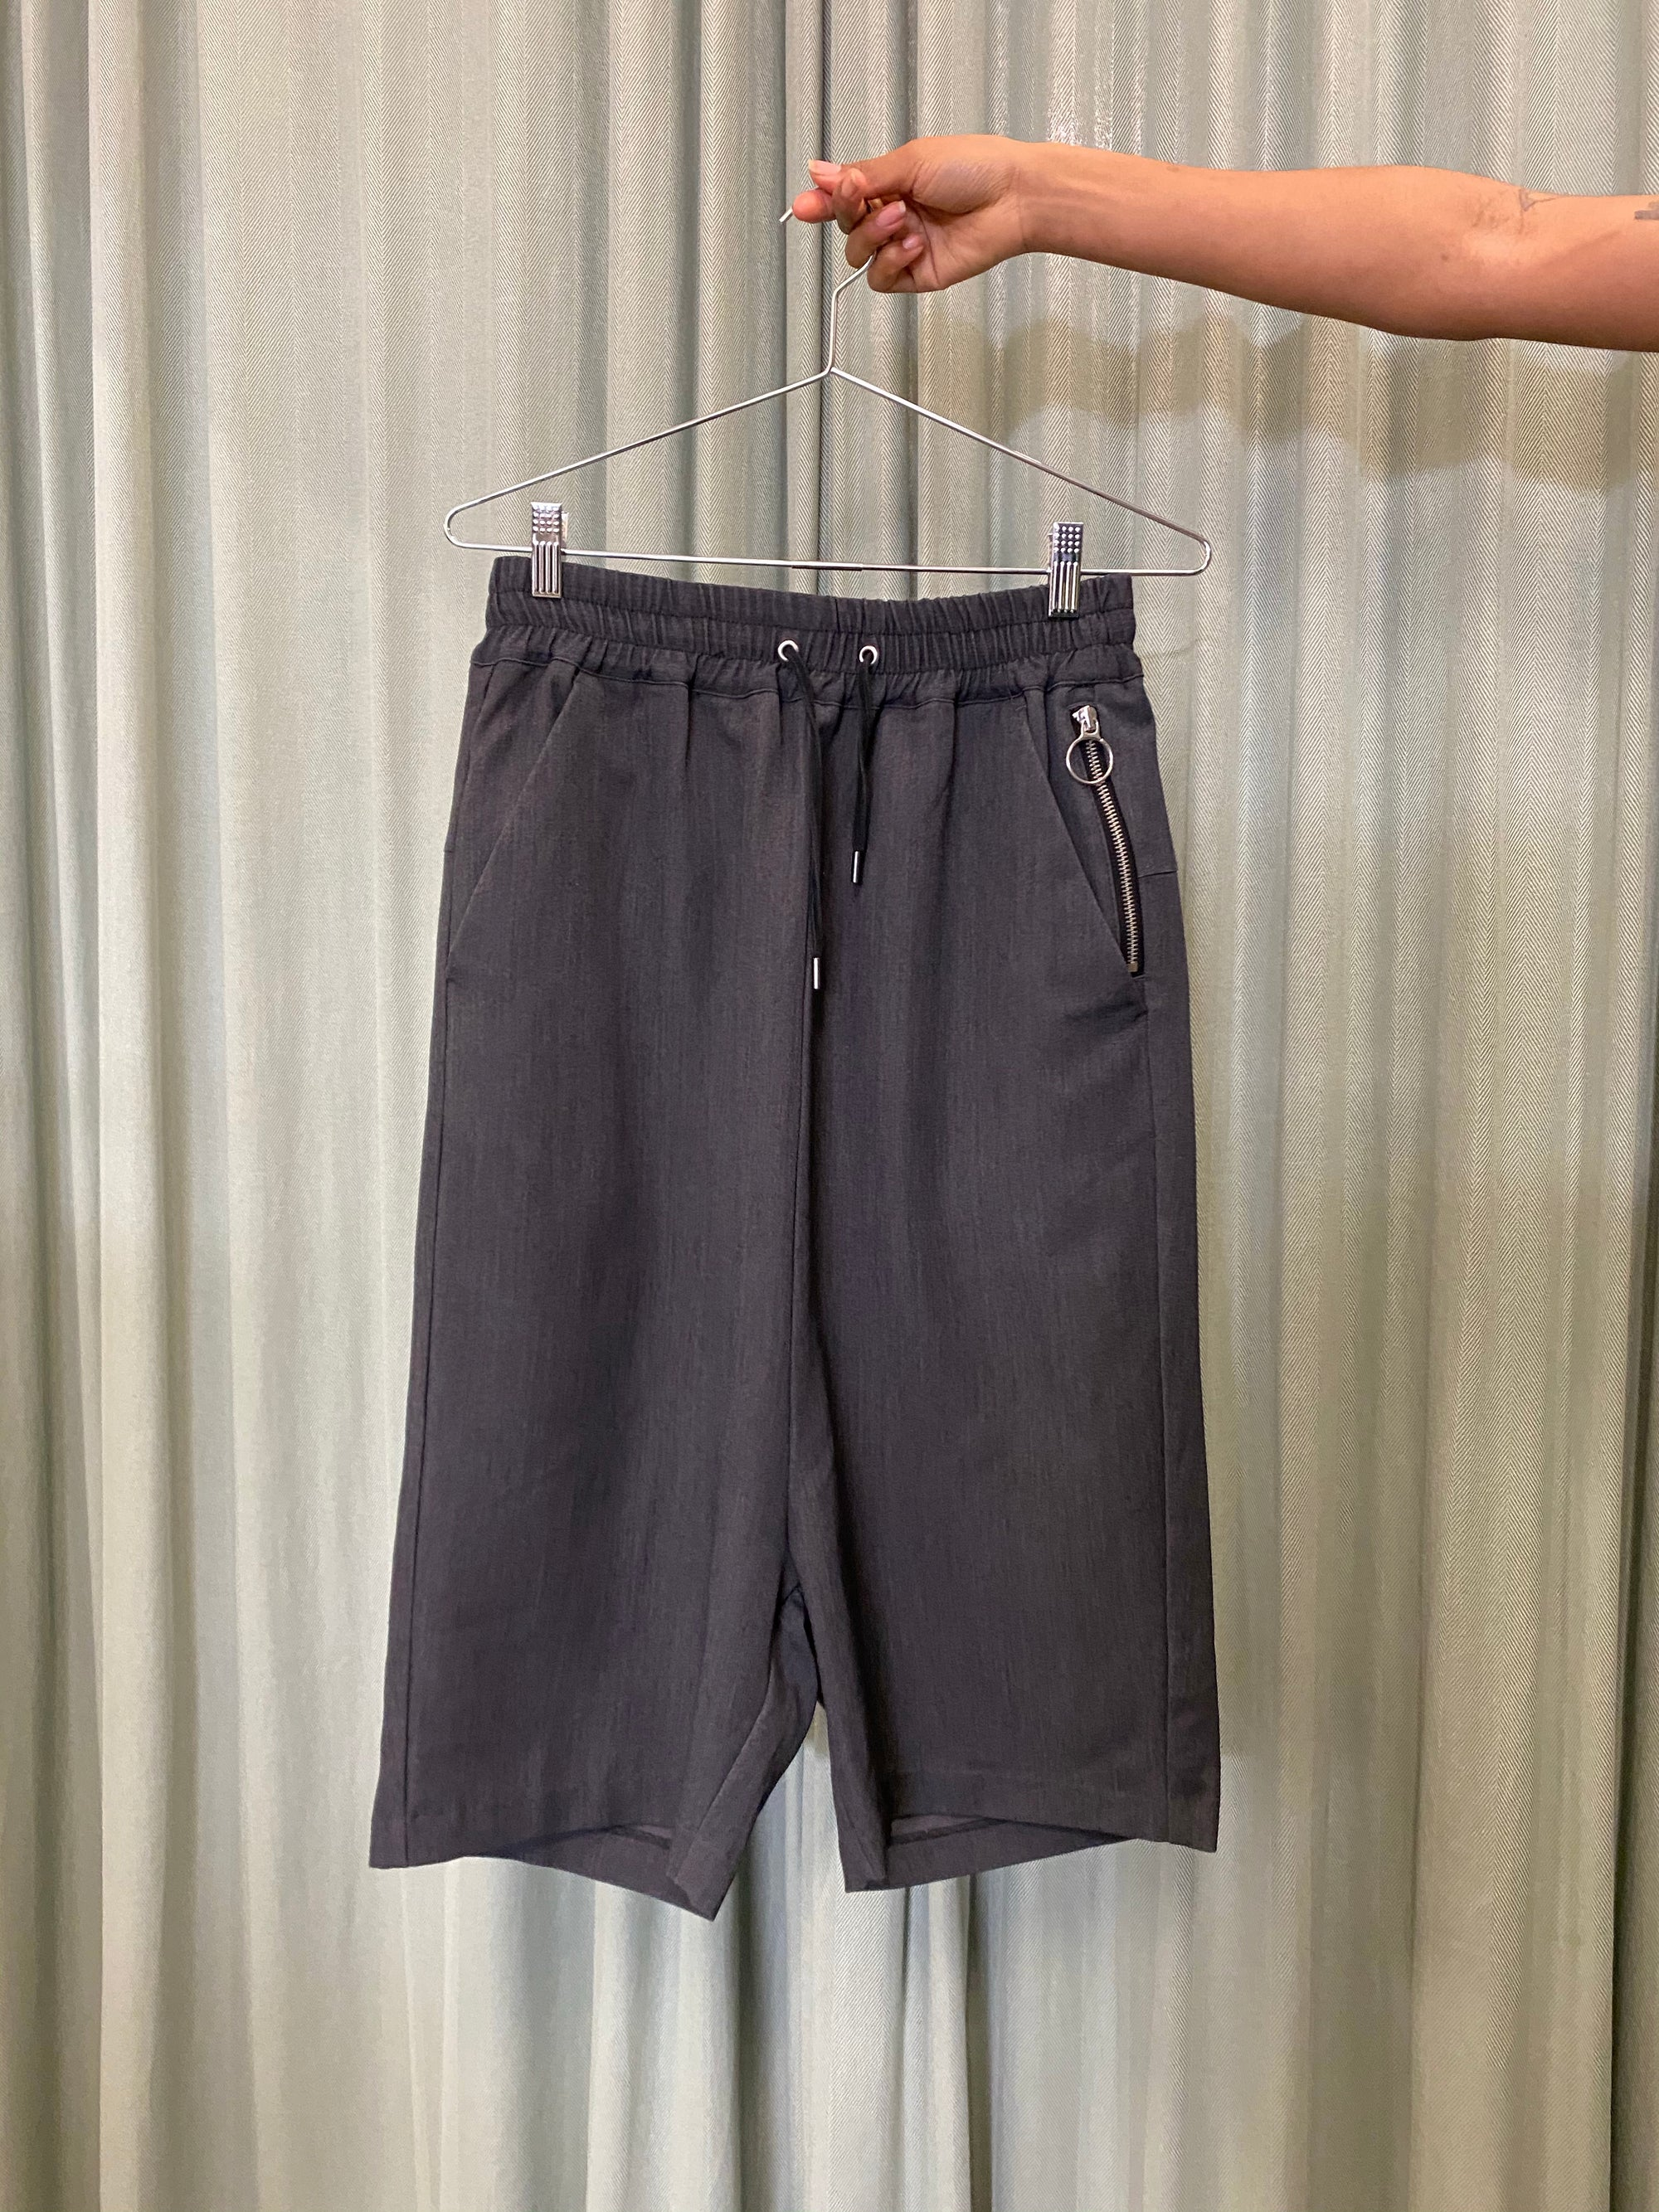 5CM Charcoal Drop Crotch Shorts